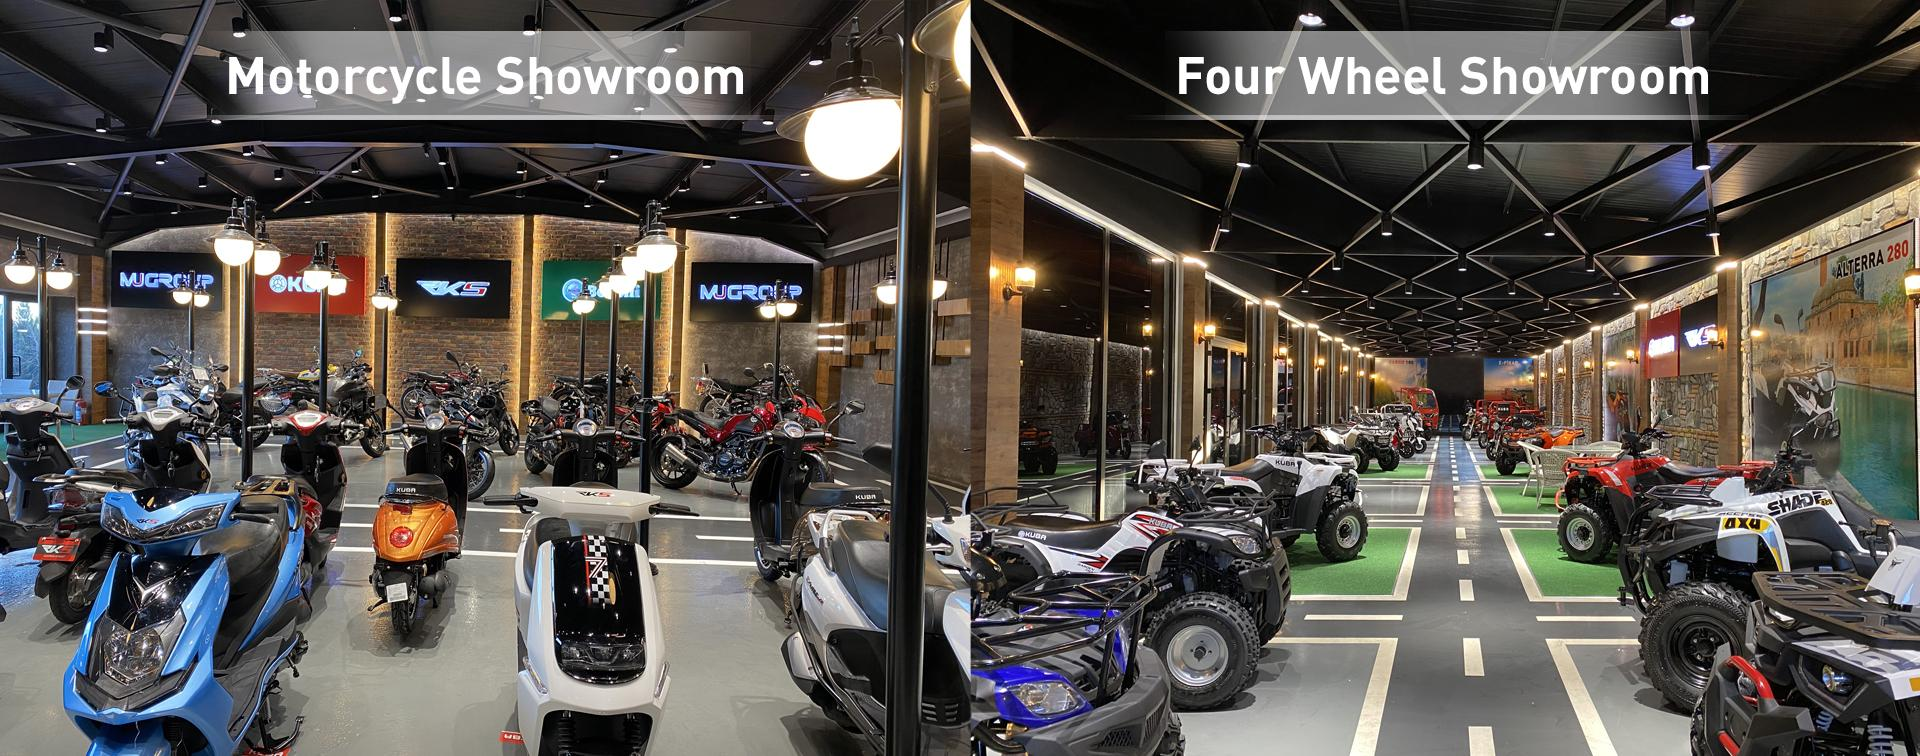 Motosiklet / ATV Showroom